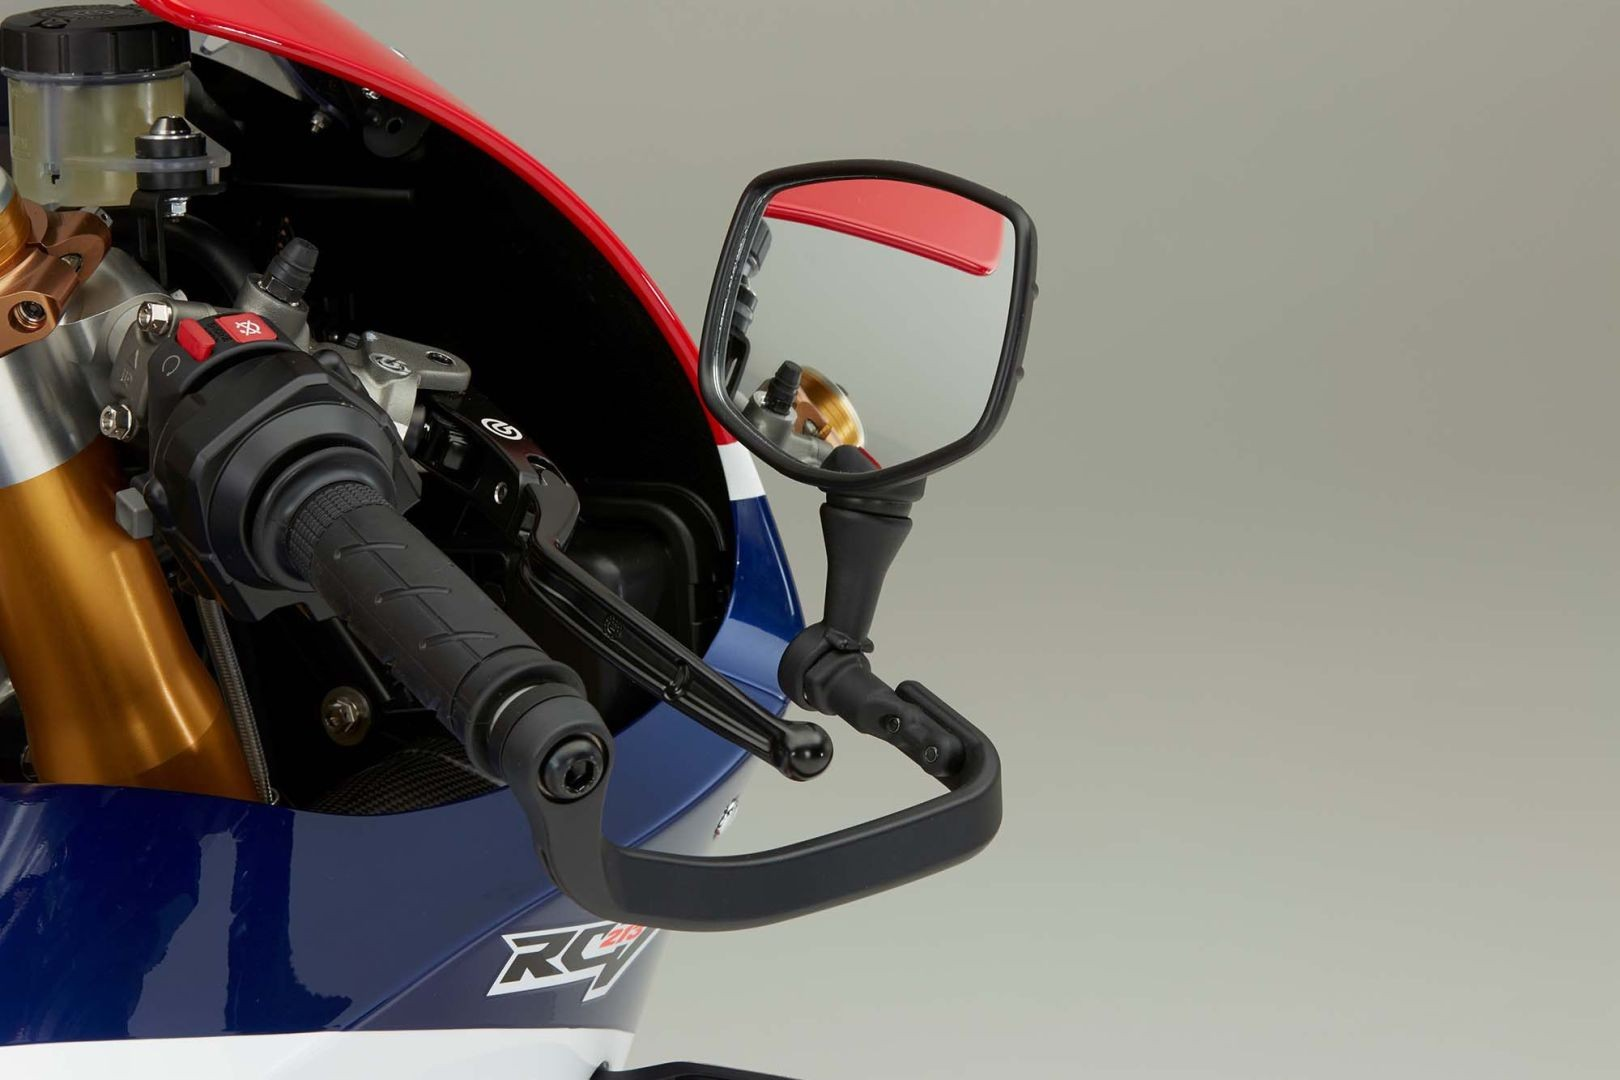 At €188,000, Honda RC213V-S Is Disappointing with 159 HP in Stock Trim - autoevolution